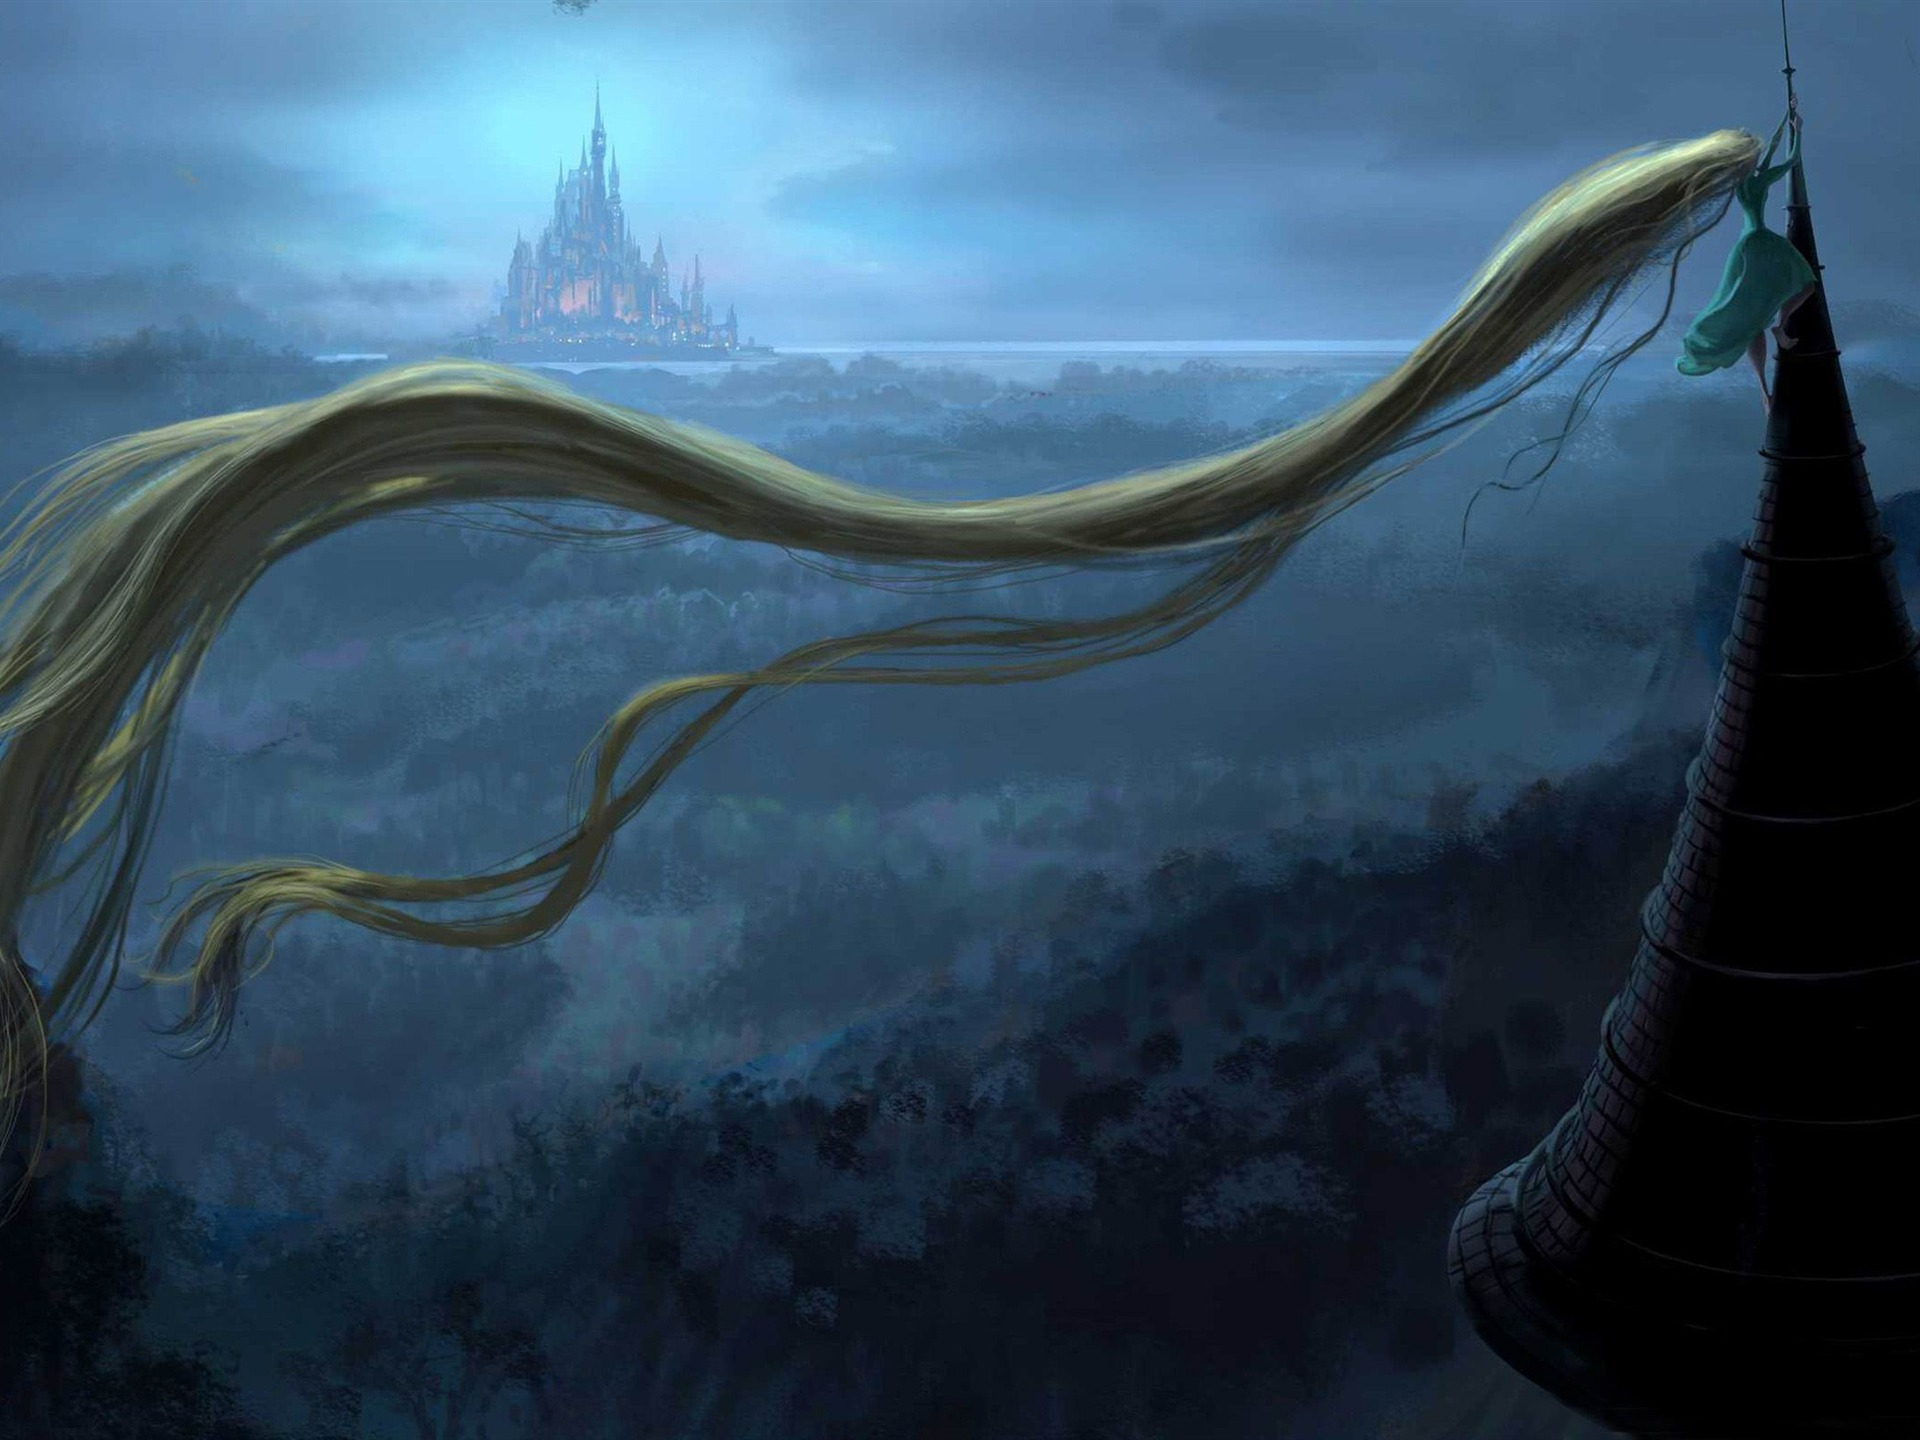 Description rapunzel tower World of fantasy art design HD wallpaper 1920x1440